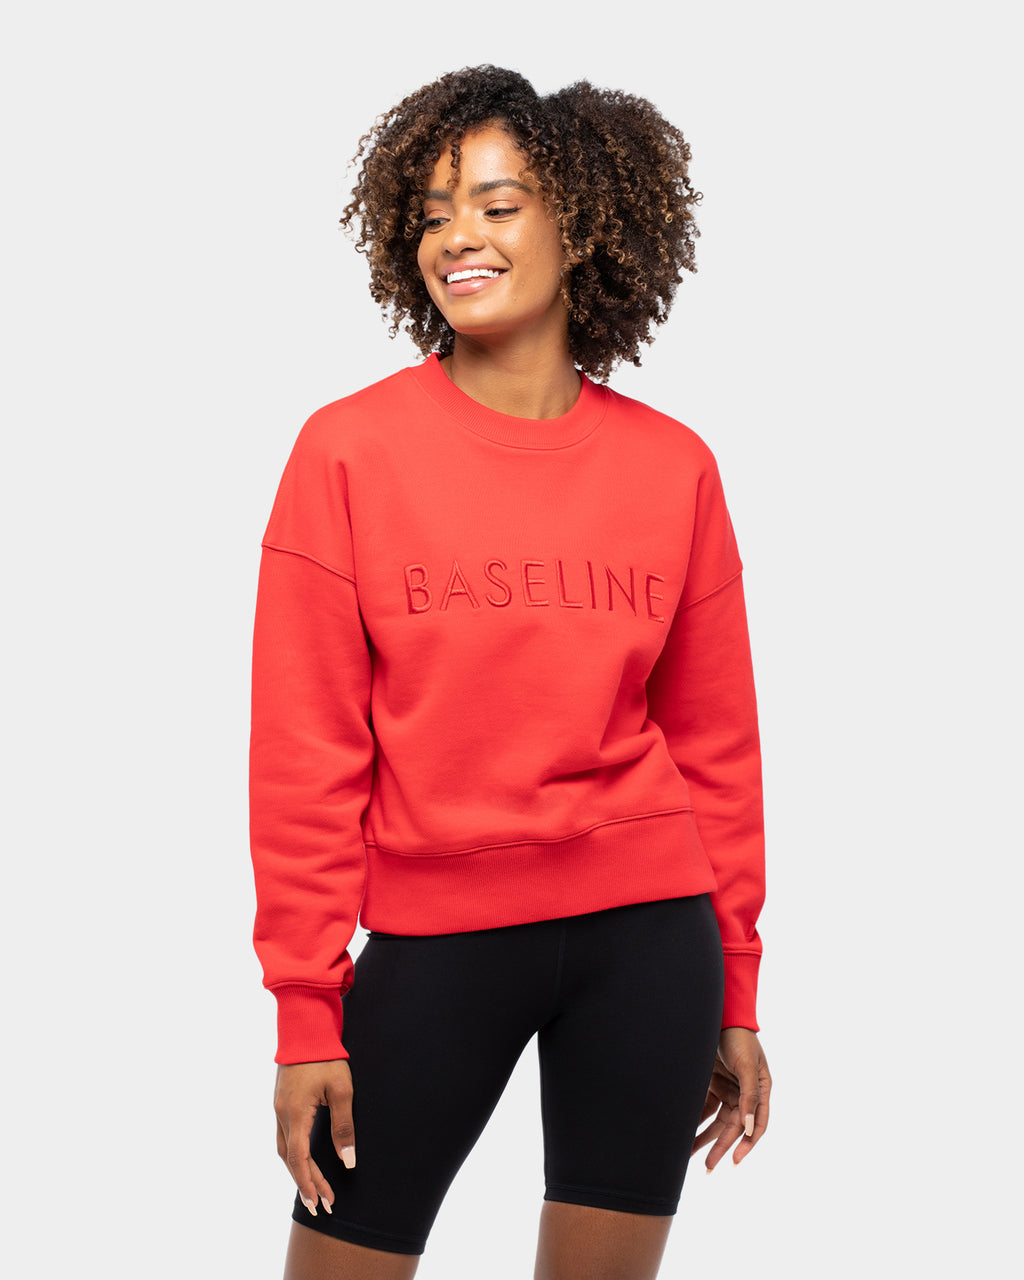 Baseline Stand Out Sweater Red